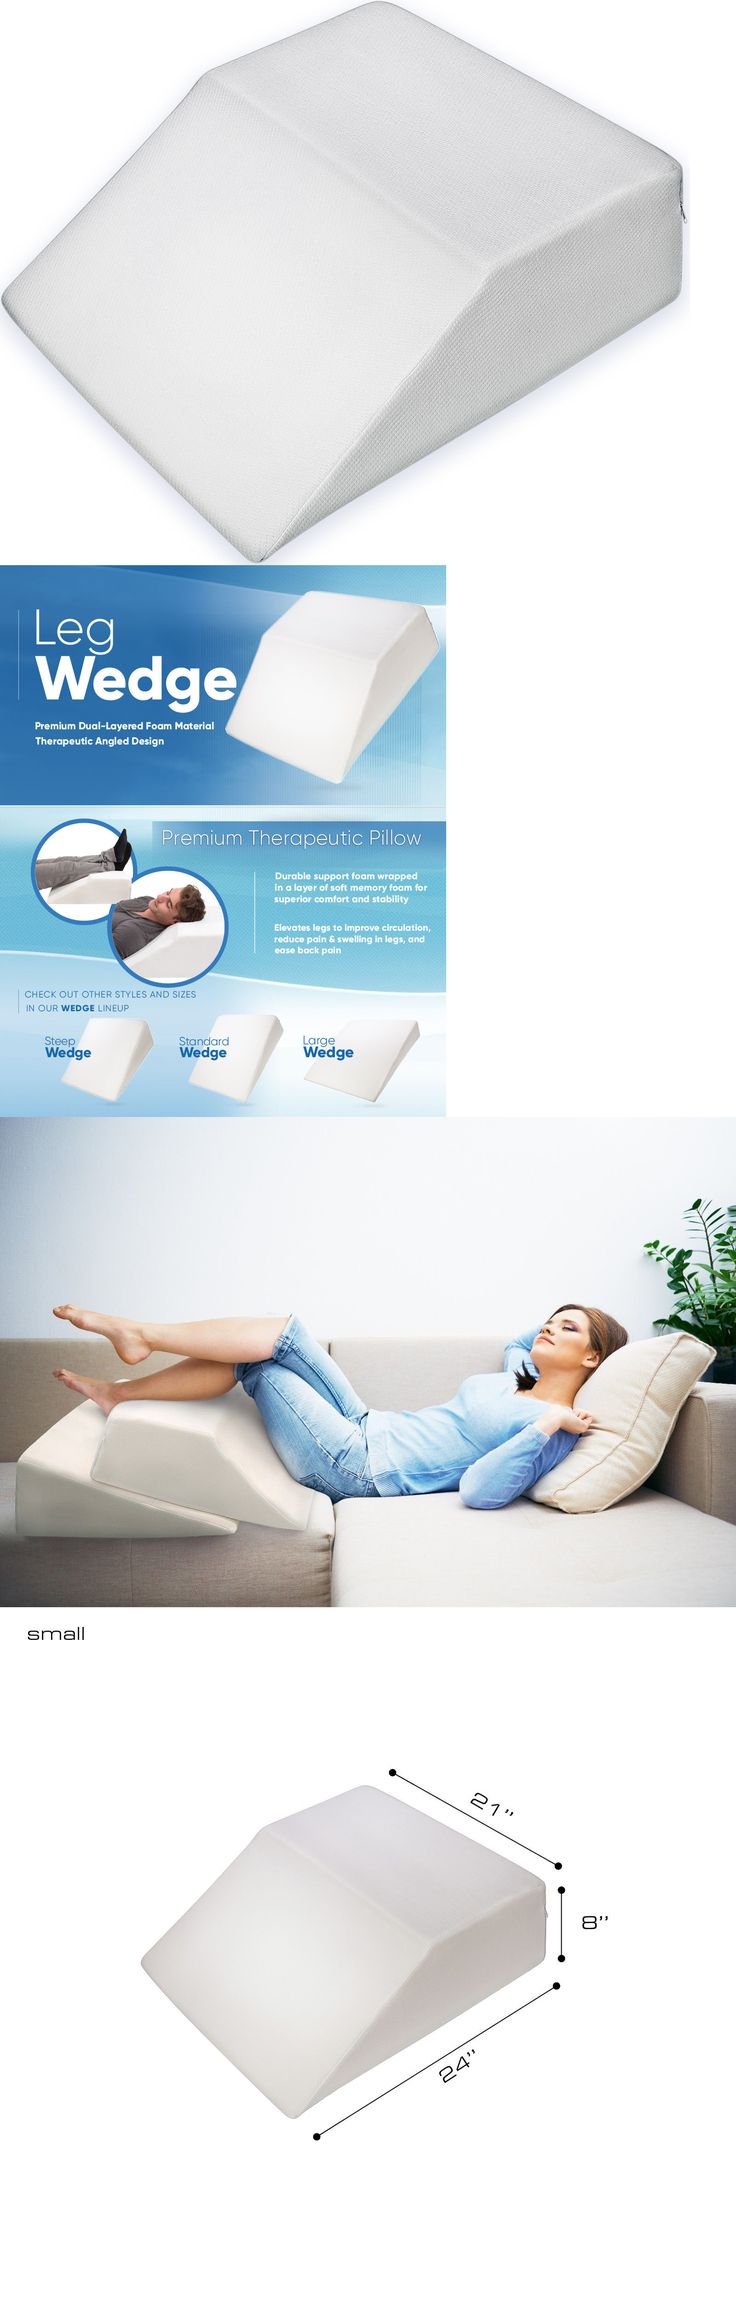 Baby bed for reflux - Wedges And Bed Positioners Pharmedoc Leg Bed Wedge Pillow W Cover Acid Reflux Pain